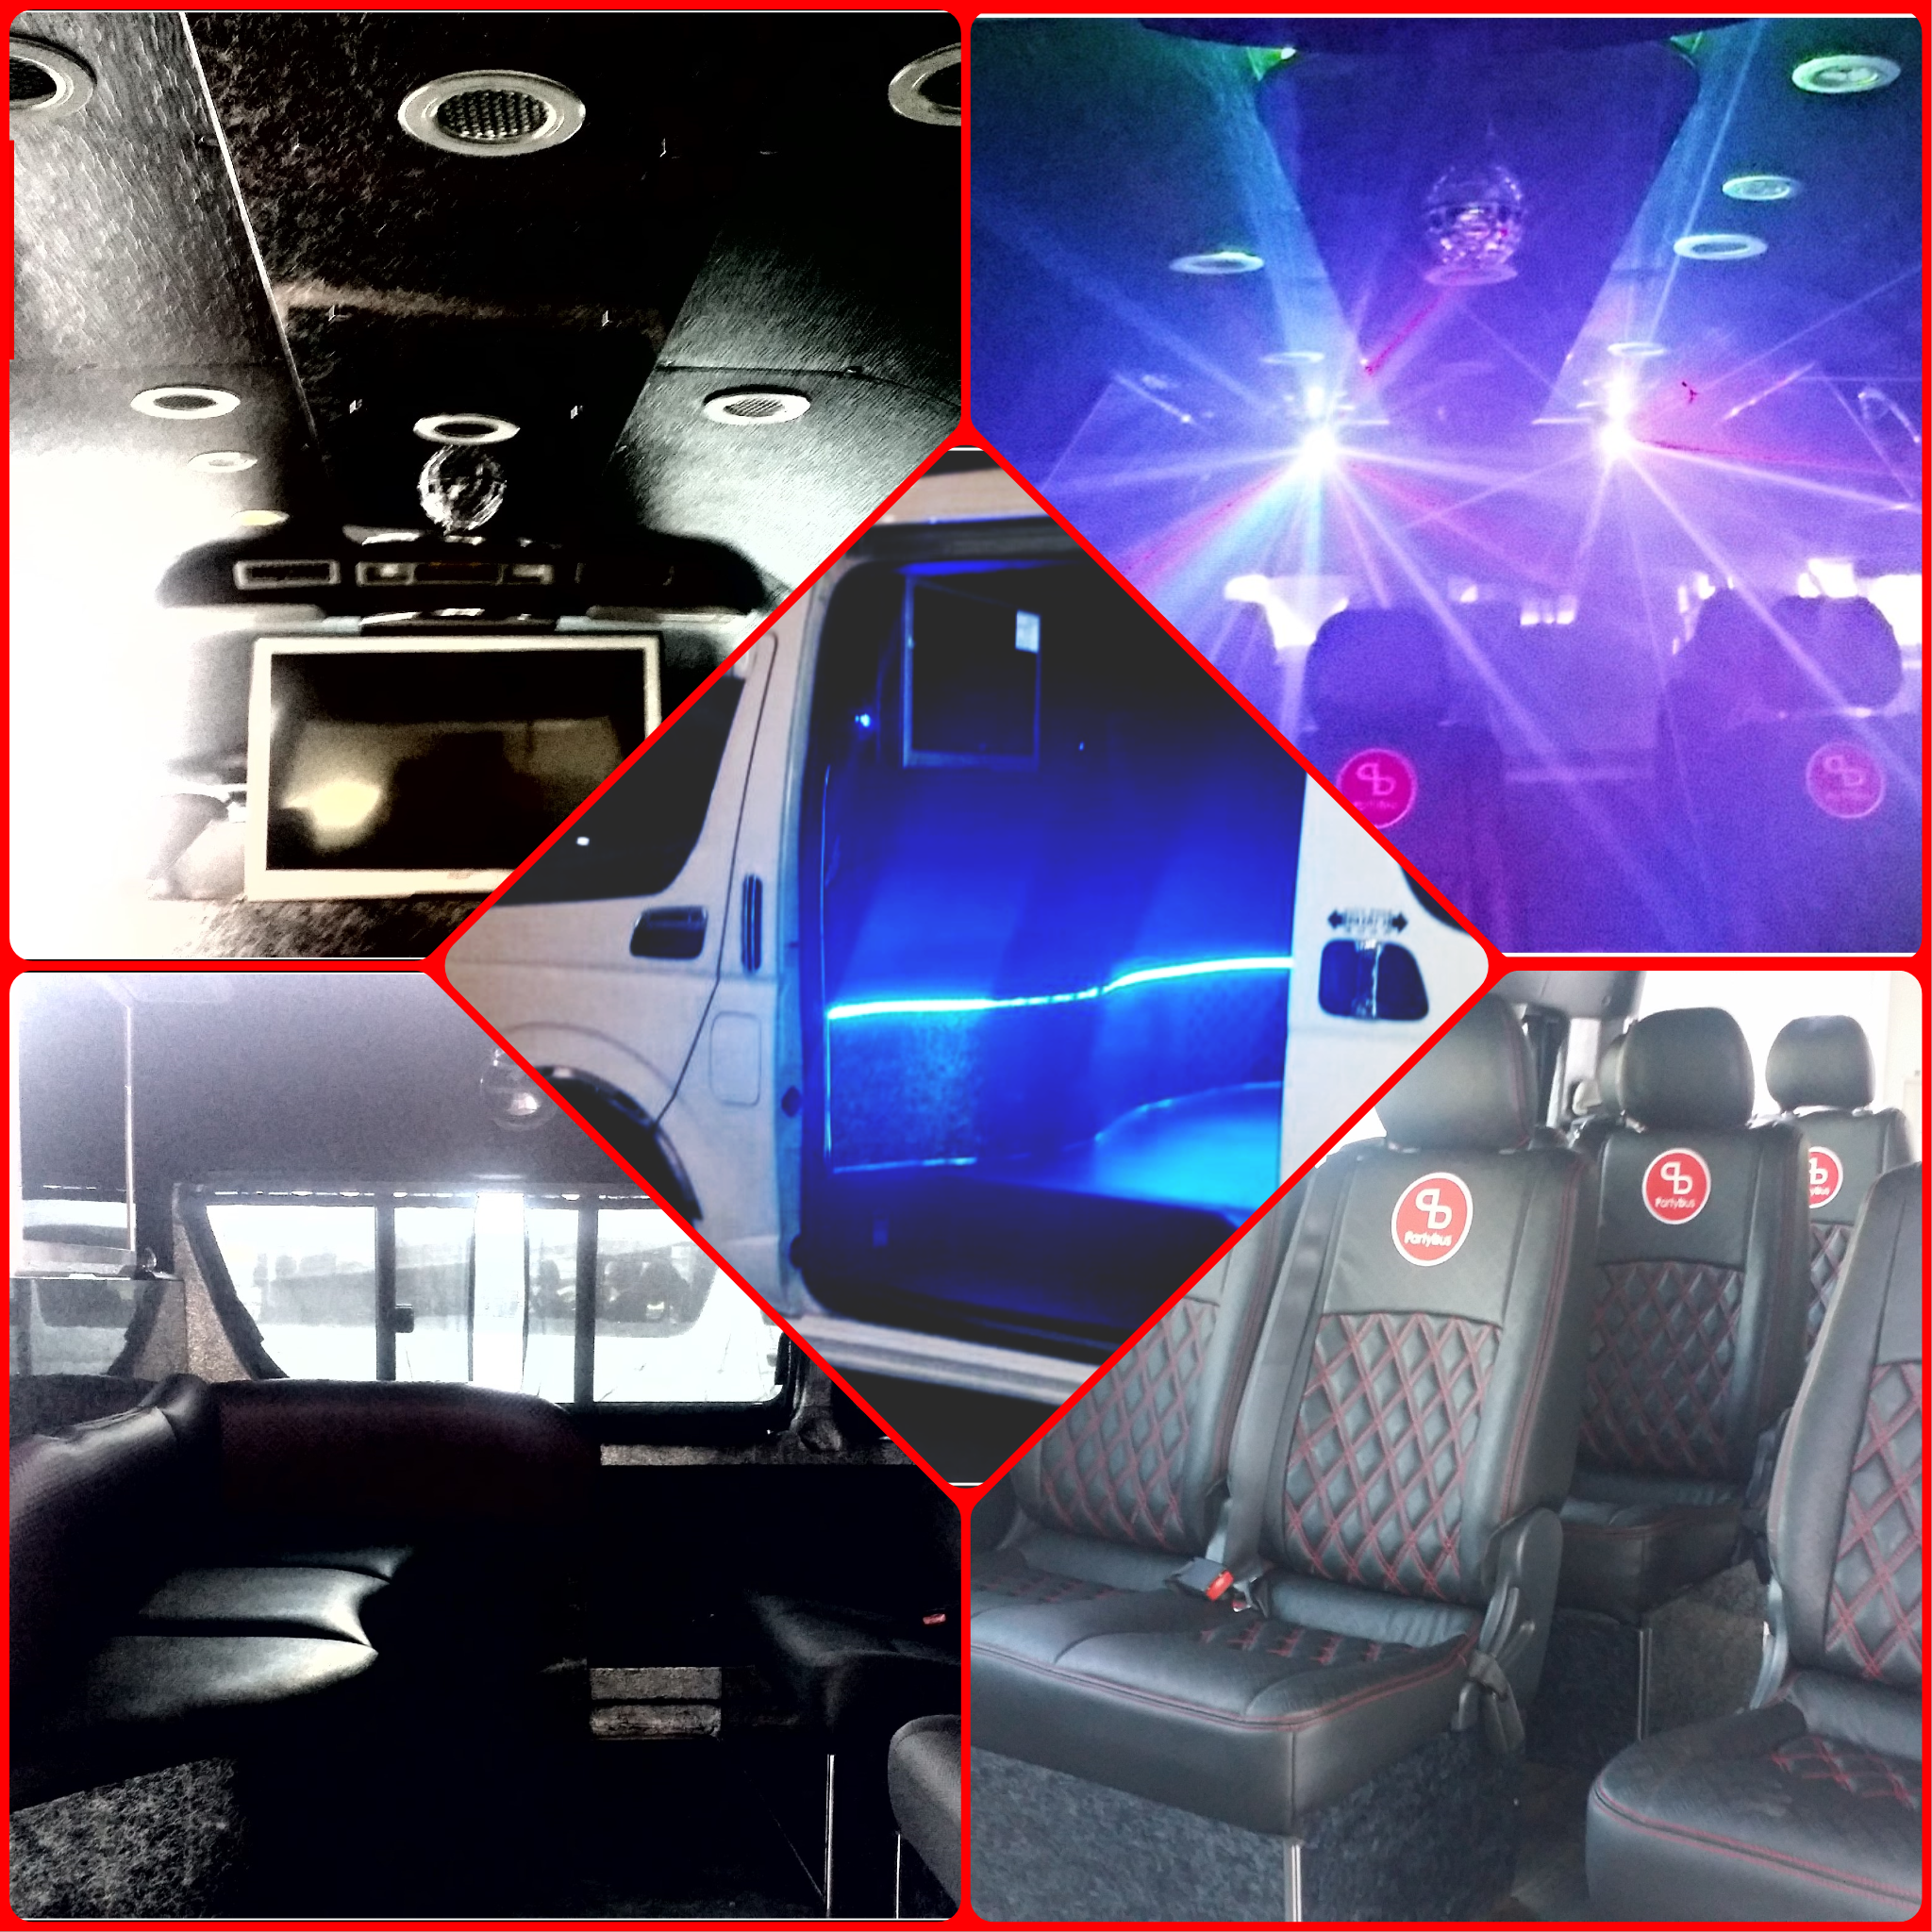 Minibus Charter For F1 Race 2016: Prep Up For An SG Tour